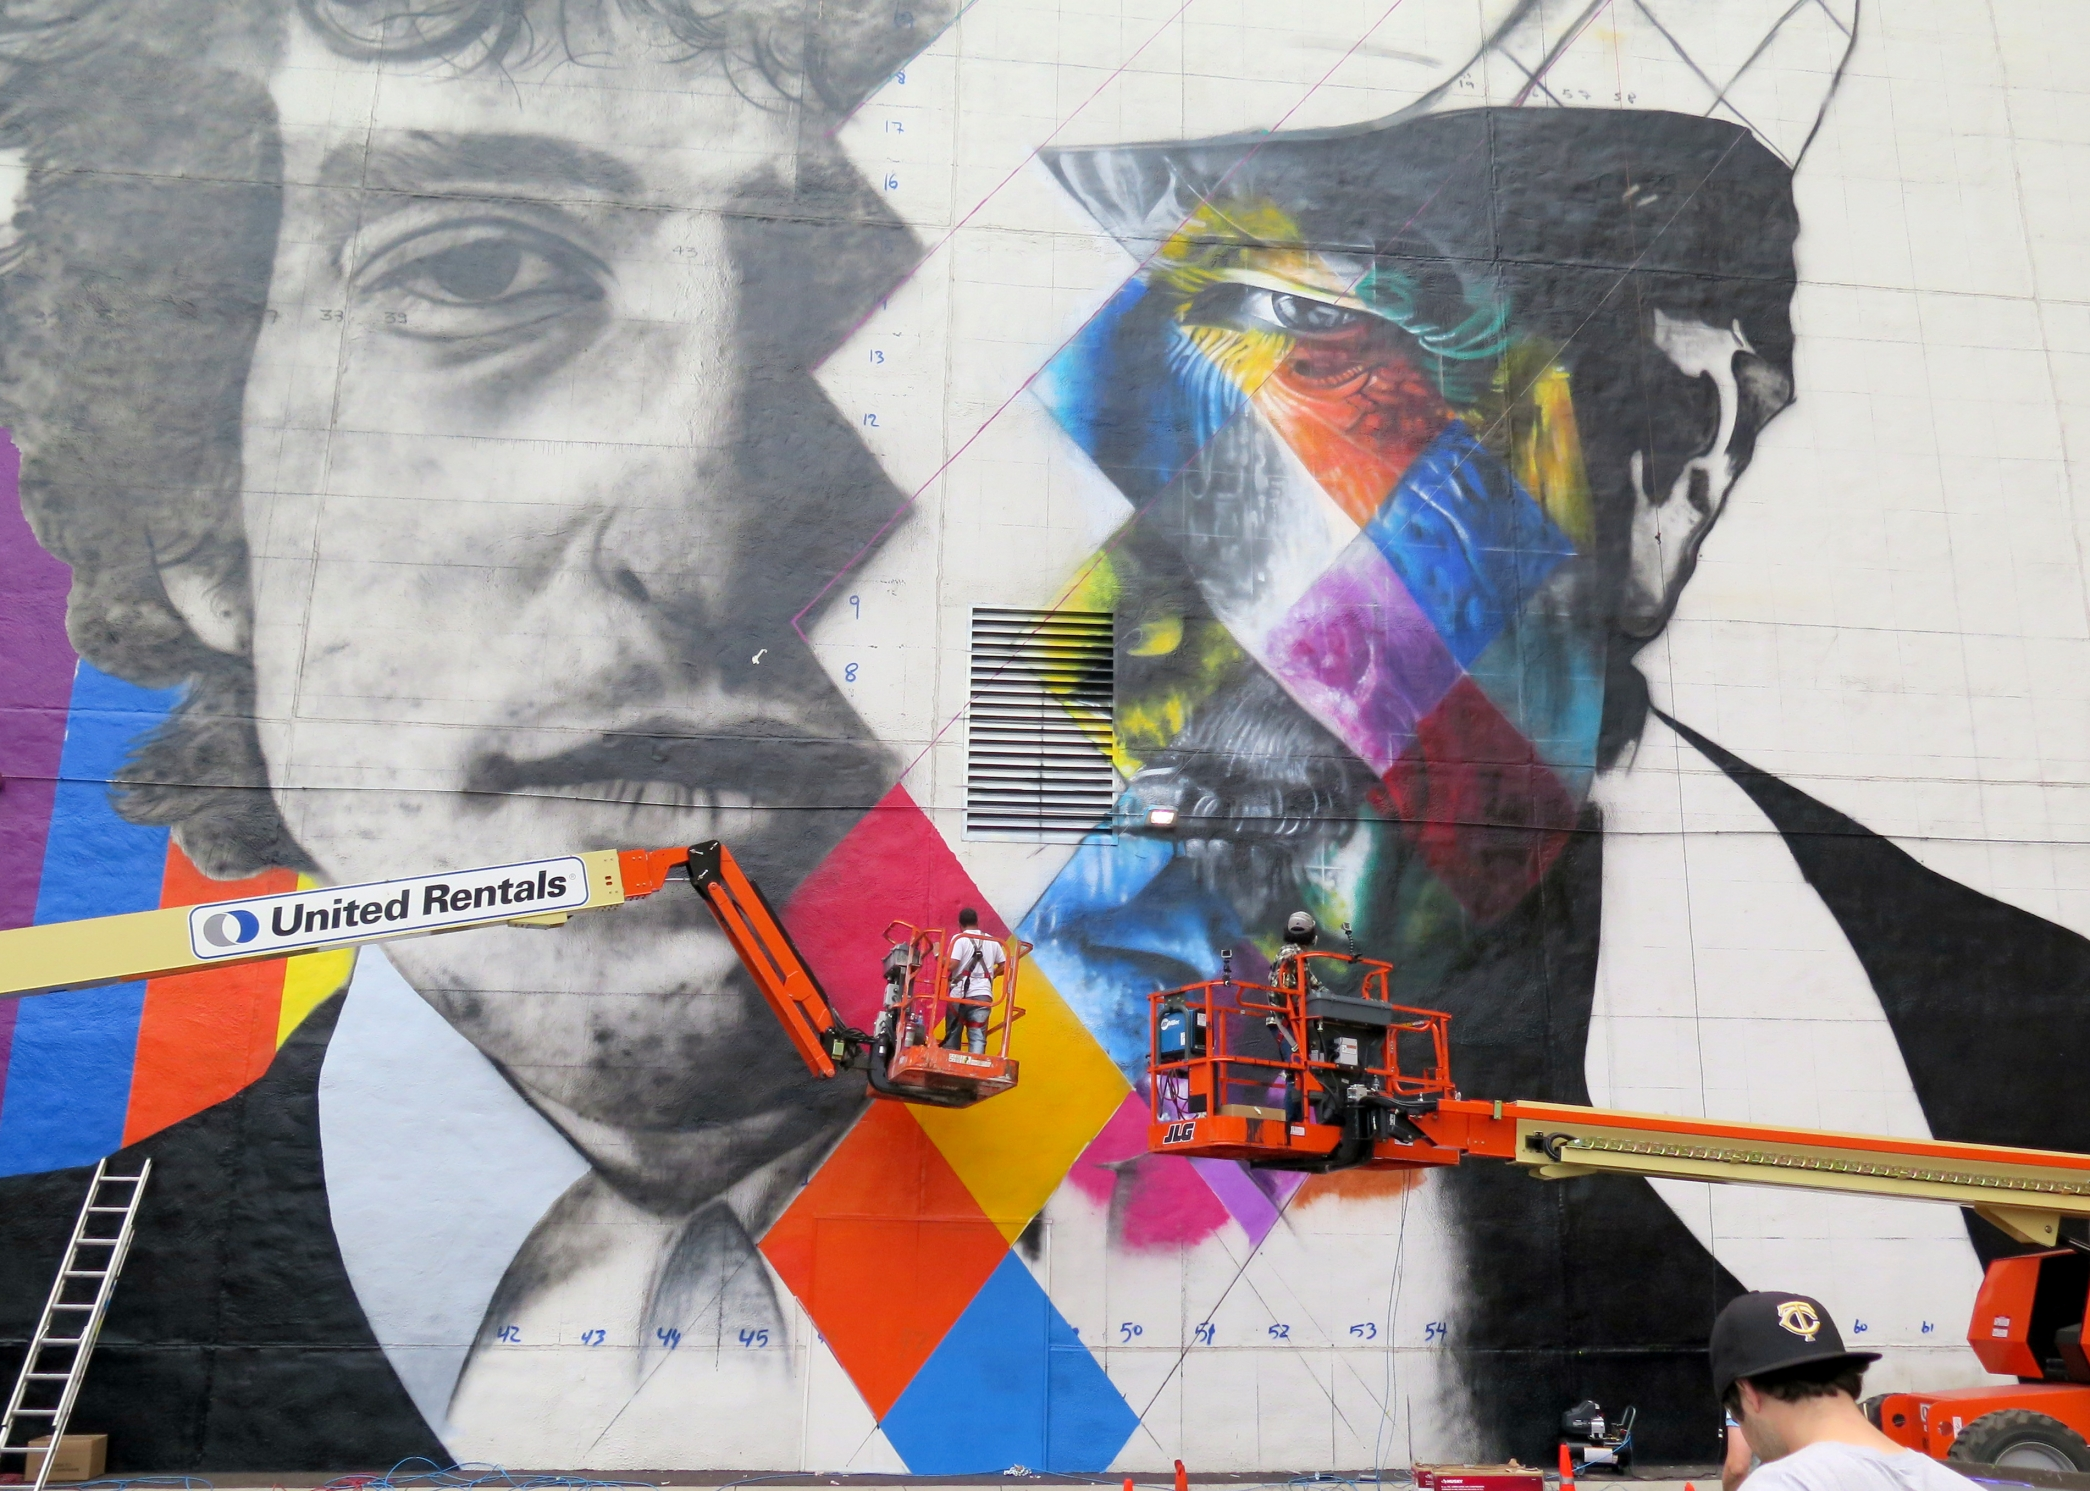 The 'canvas' for a mural by Brazillian artist Kobra- with multiple images of Bob Dylan takes on color, Friday 8/28.